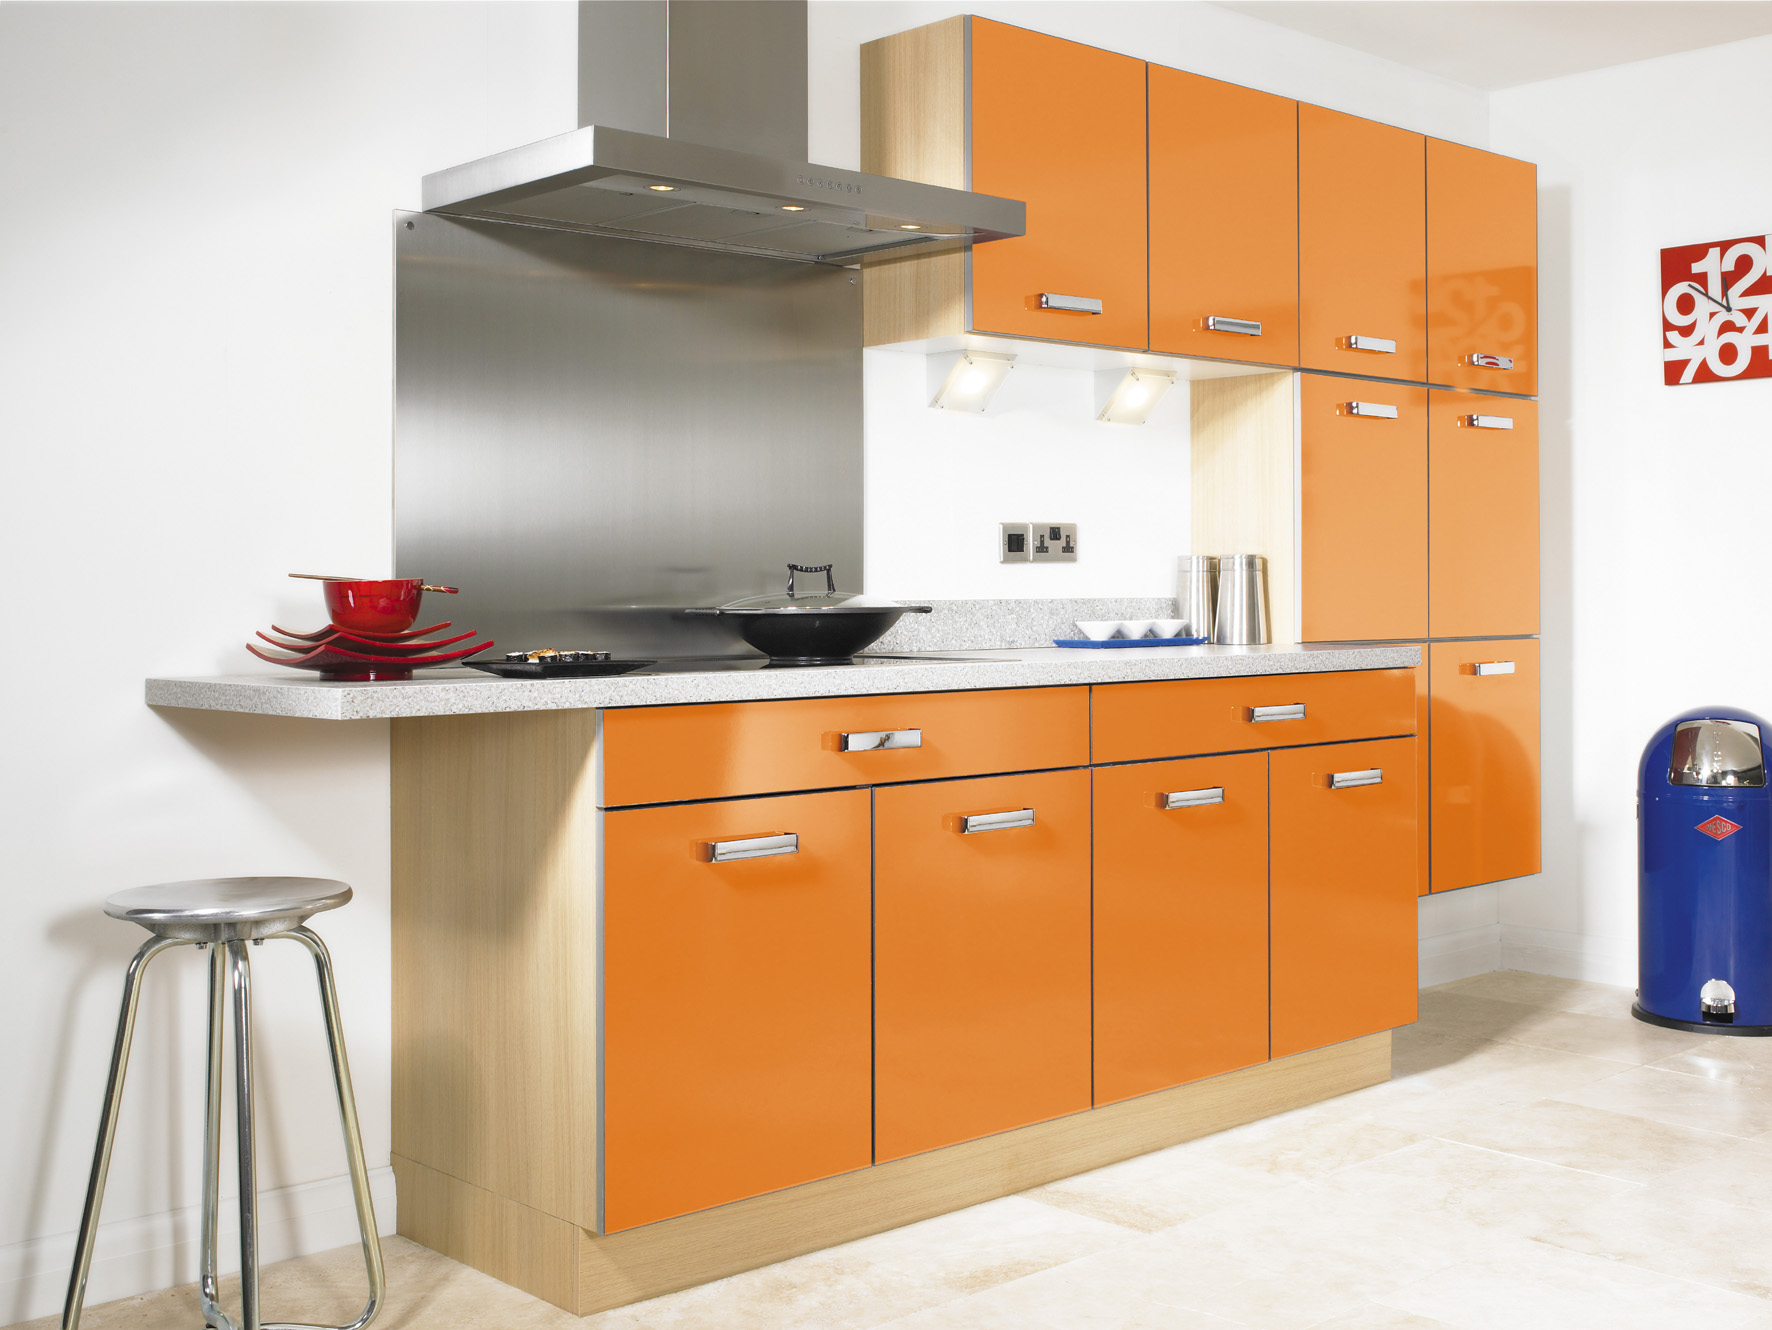 Orange kitchens - Small kitchen interior design ...